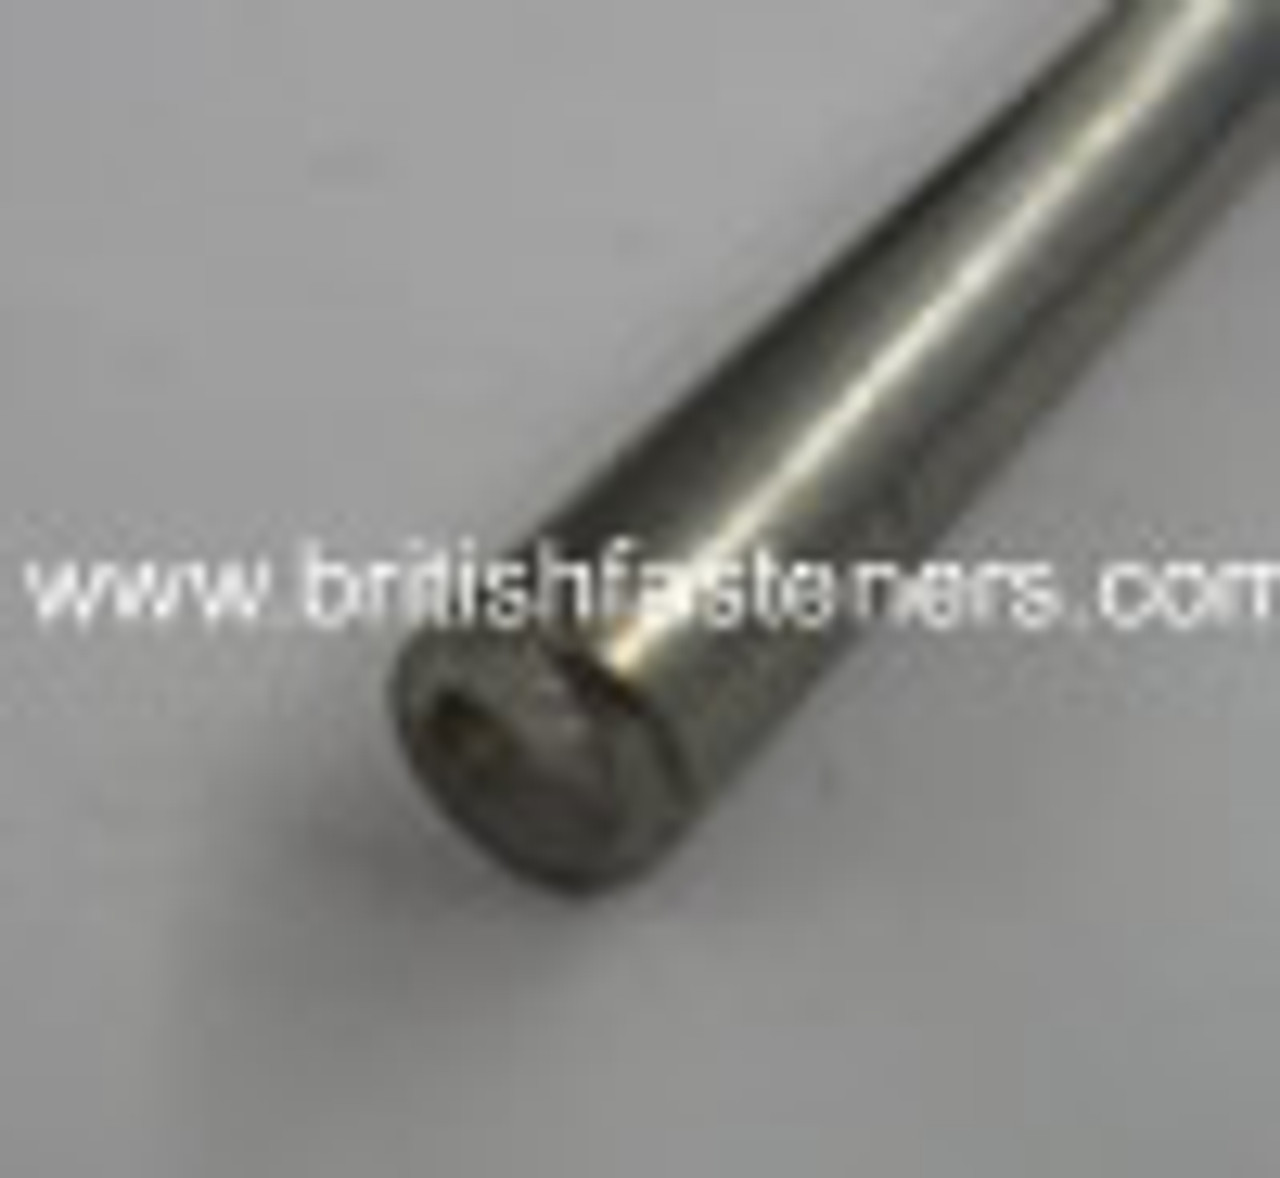 """1/4"""" STAINLESS ROUND BAR x 10"""" LONG - (5118)"""